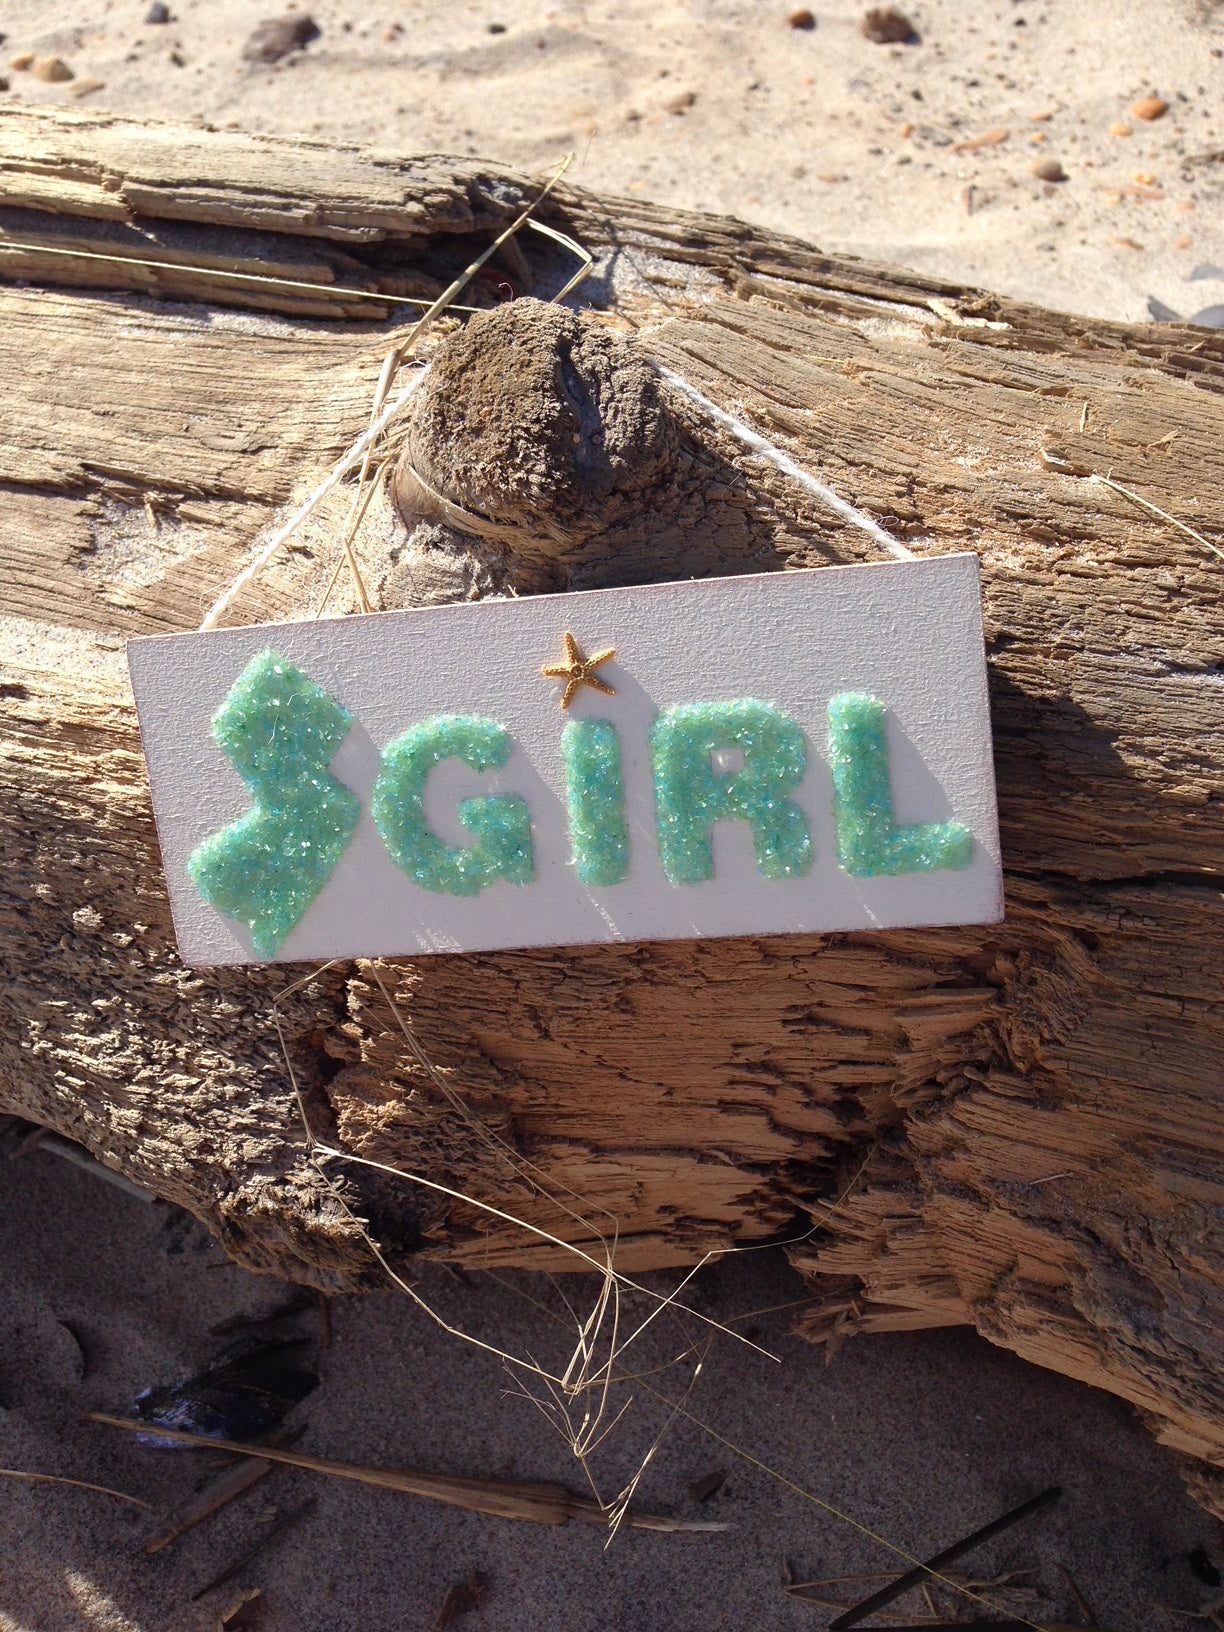 Jersey Girl Wood Sign Made of Green Crushed Glass